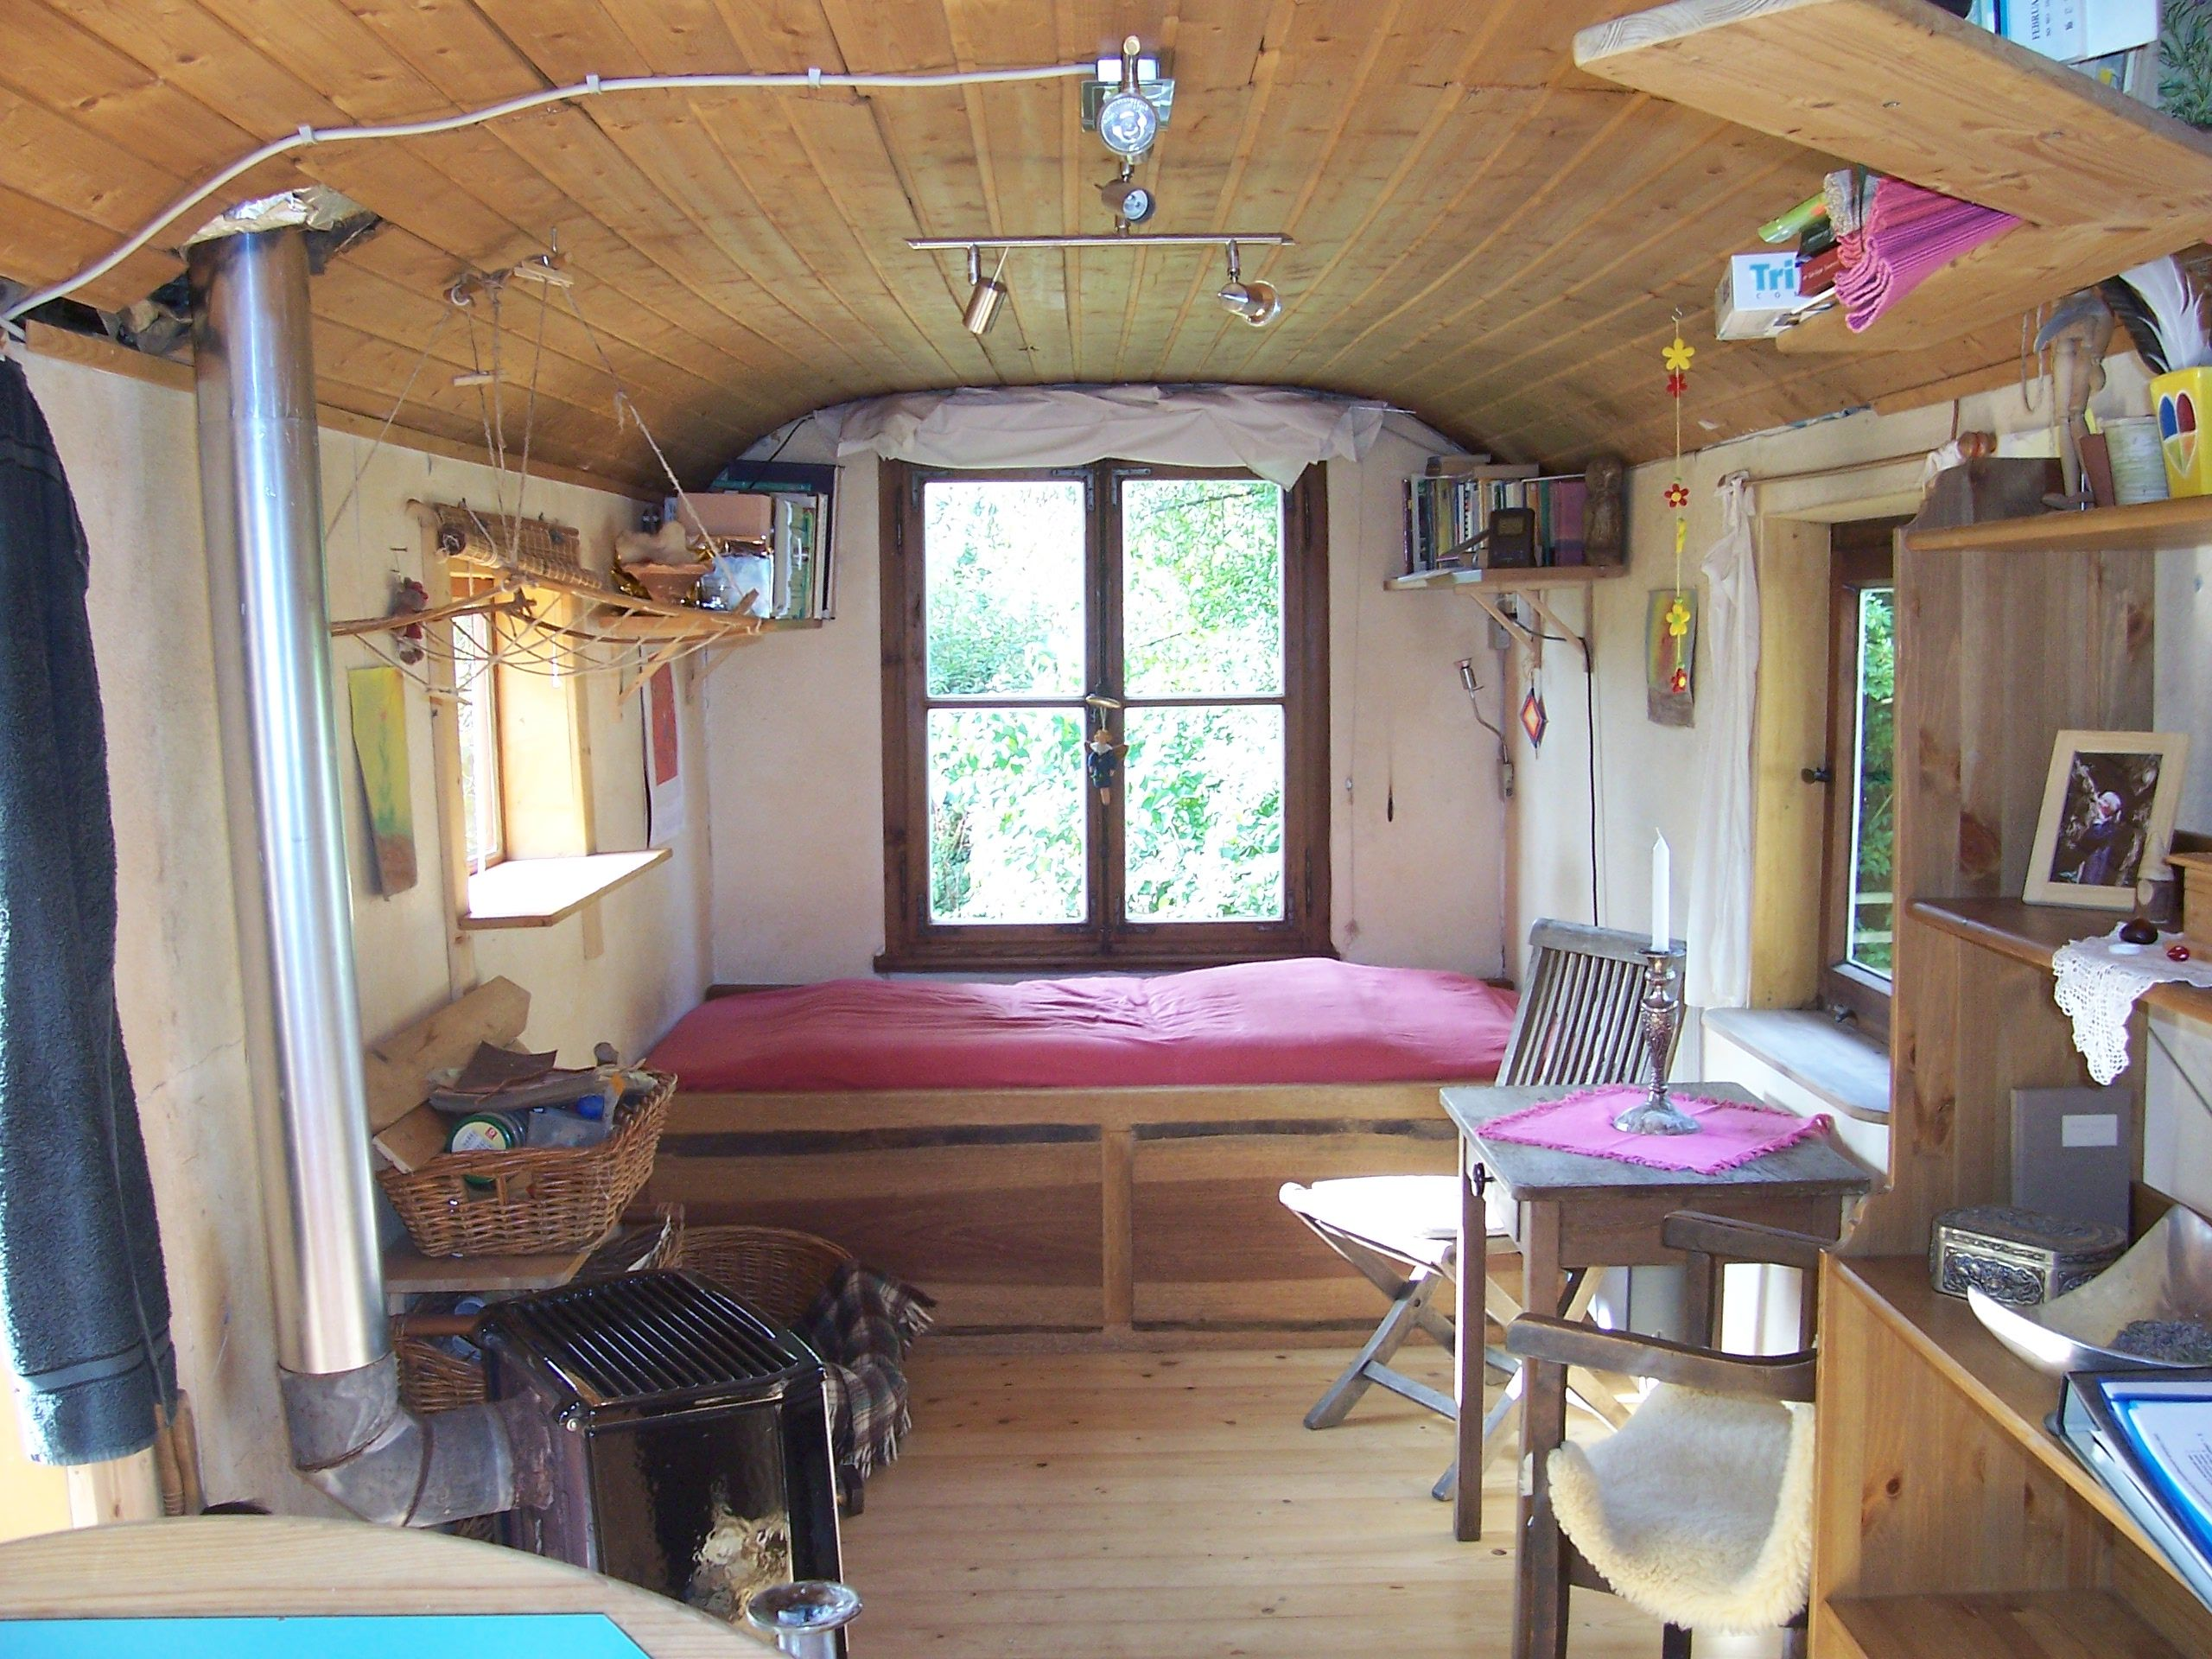 Container Haus Innenausbau Bauwagen Tiny Home Vardos Roulottes Shepherd S Huts